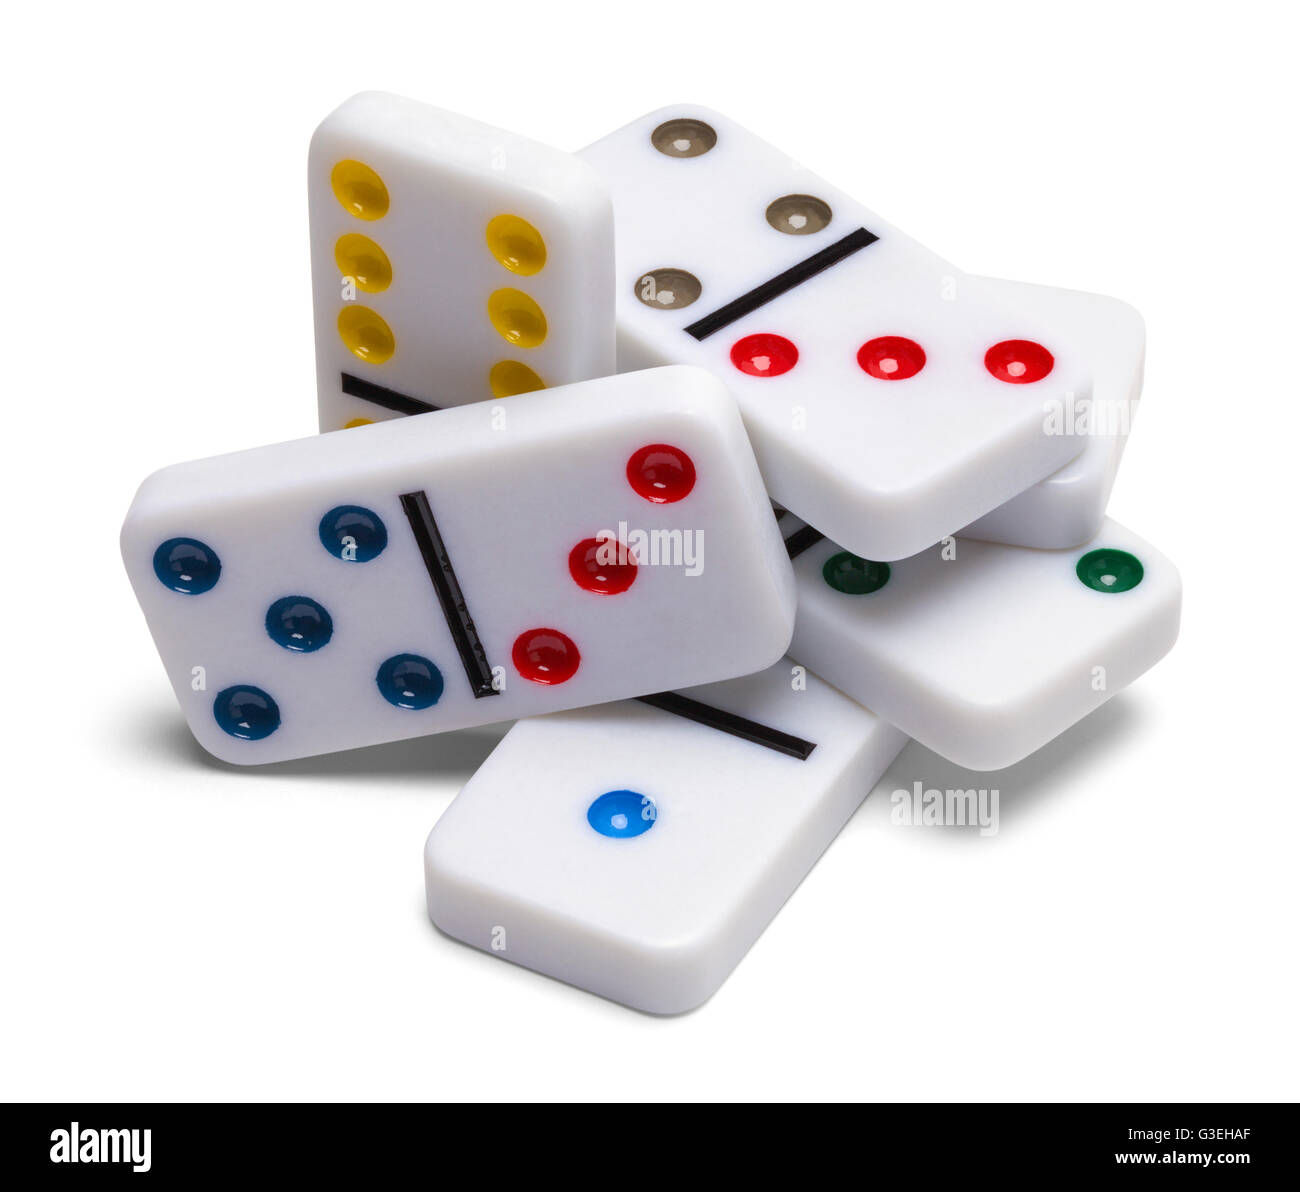 Pile of Domino Pieces Isolated on White Background. - Stock Image